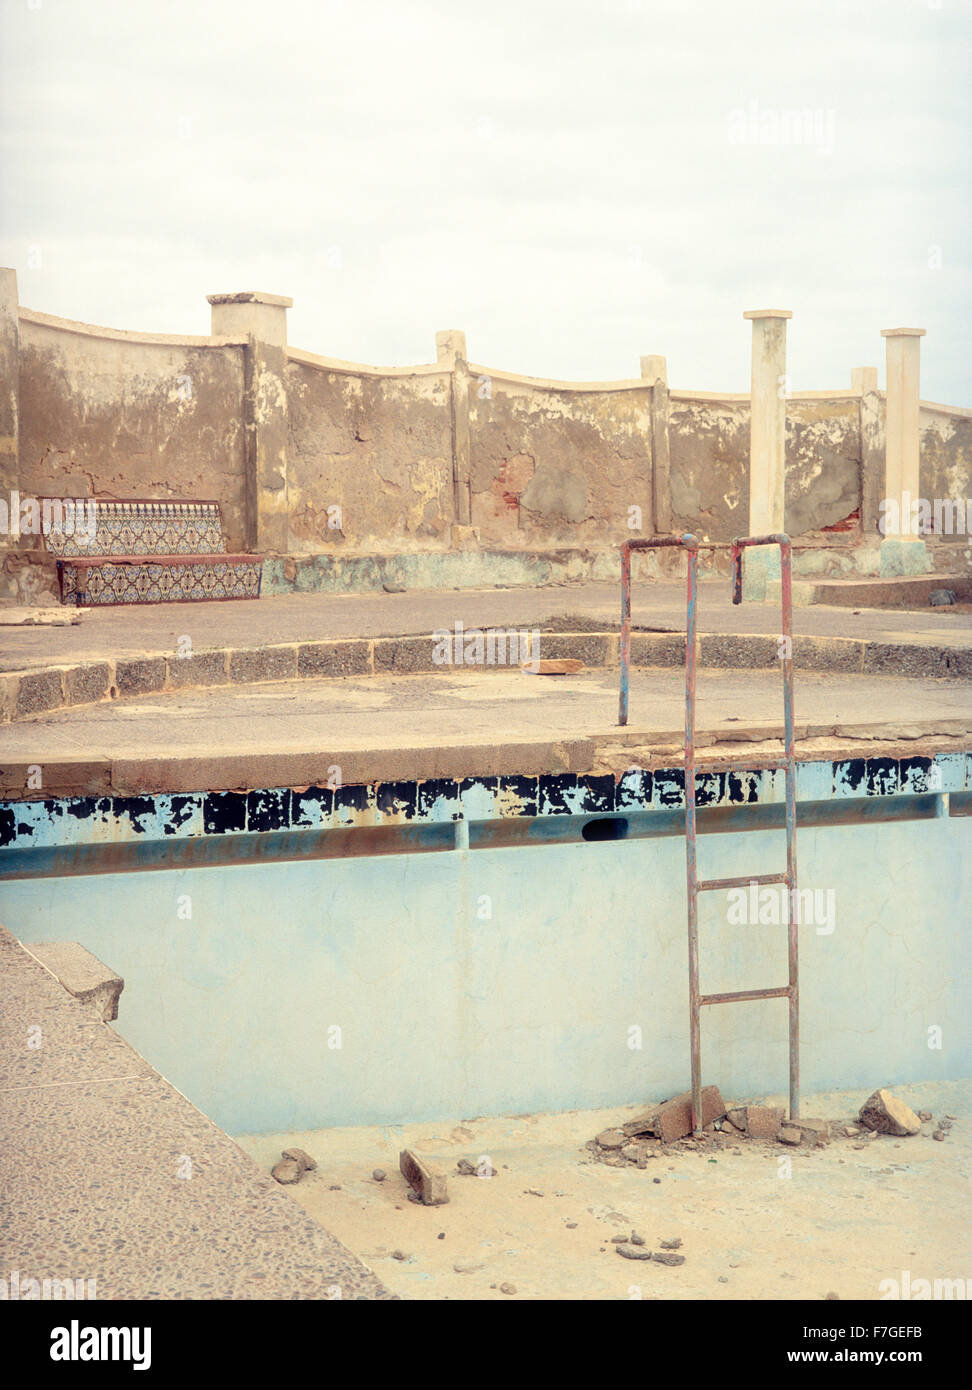 An abandoned and decaying swimming pool in Sidi Ifni ia former Spanish colony on the West coast of Morocco, North - Stock Image